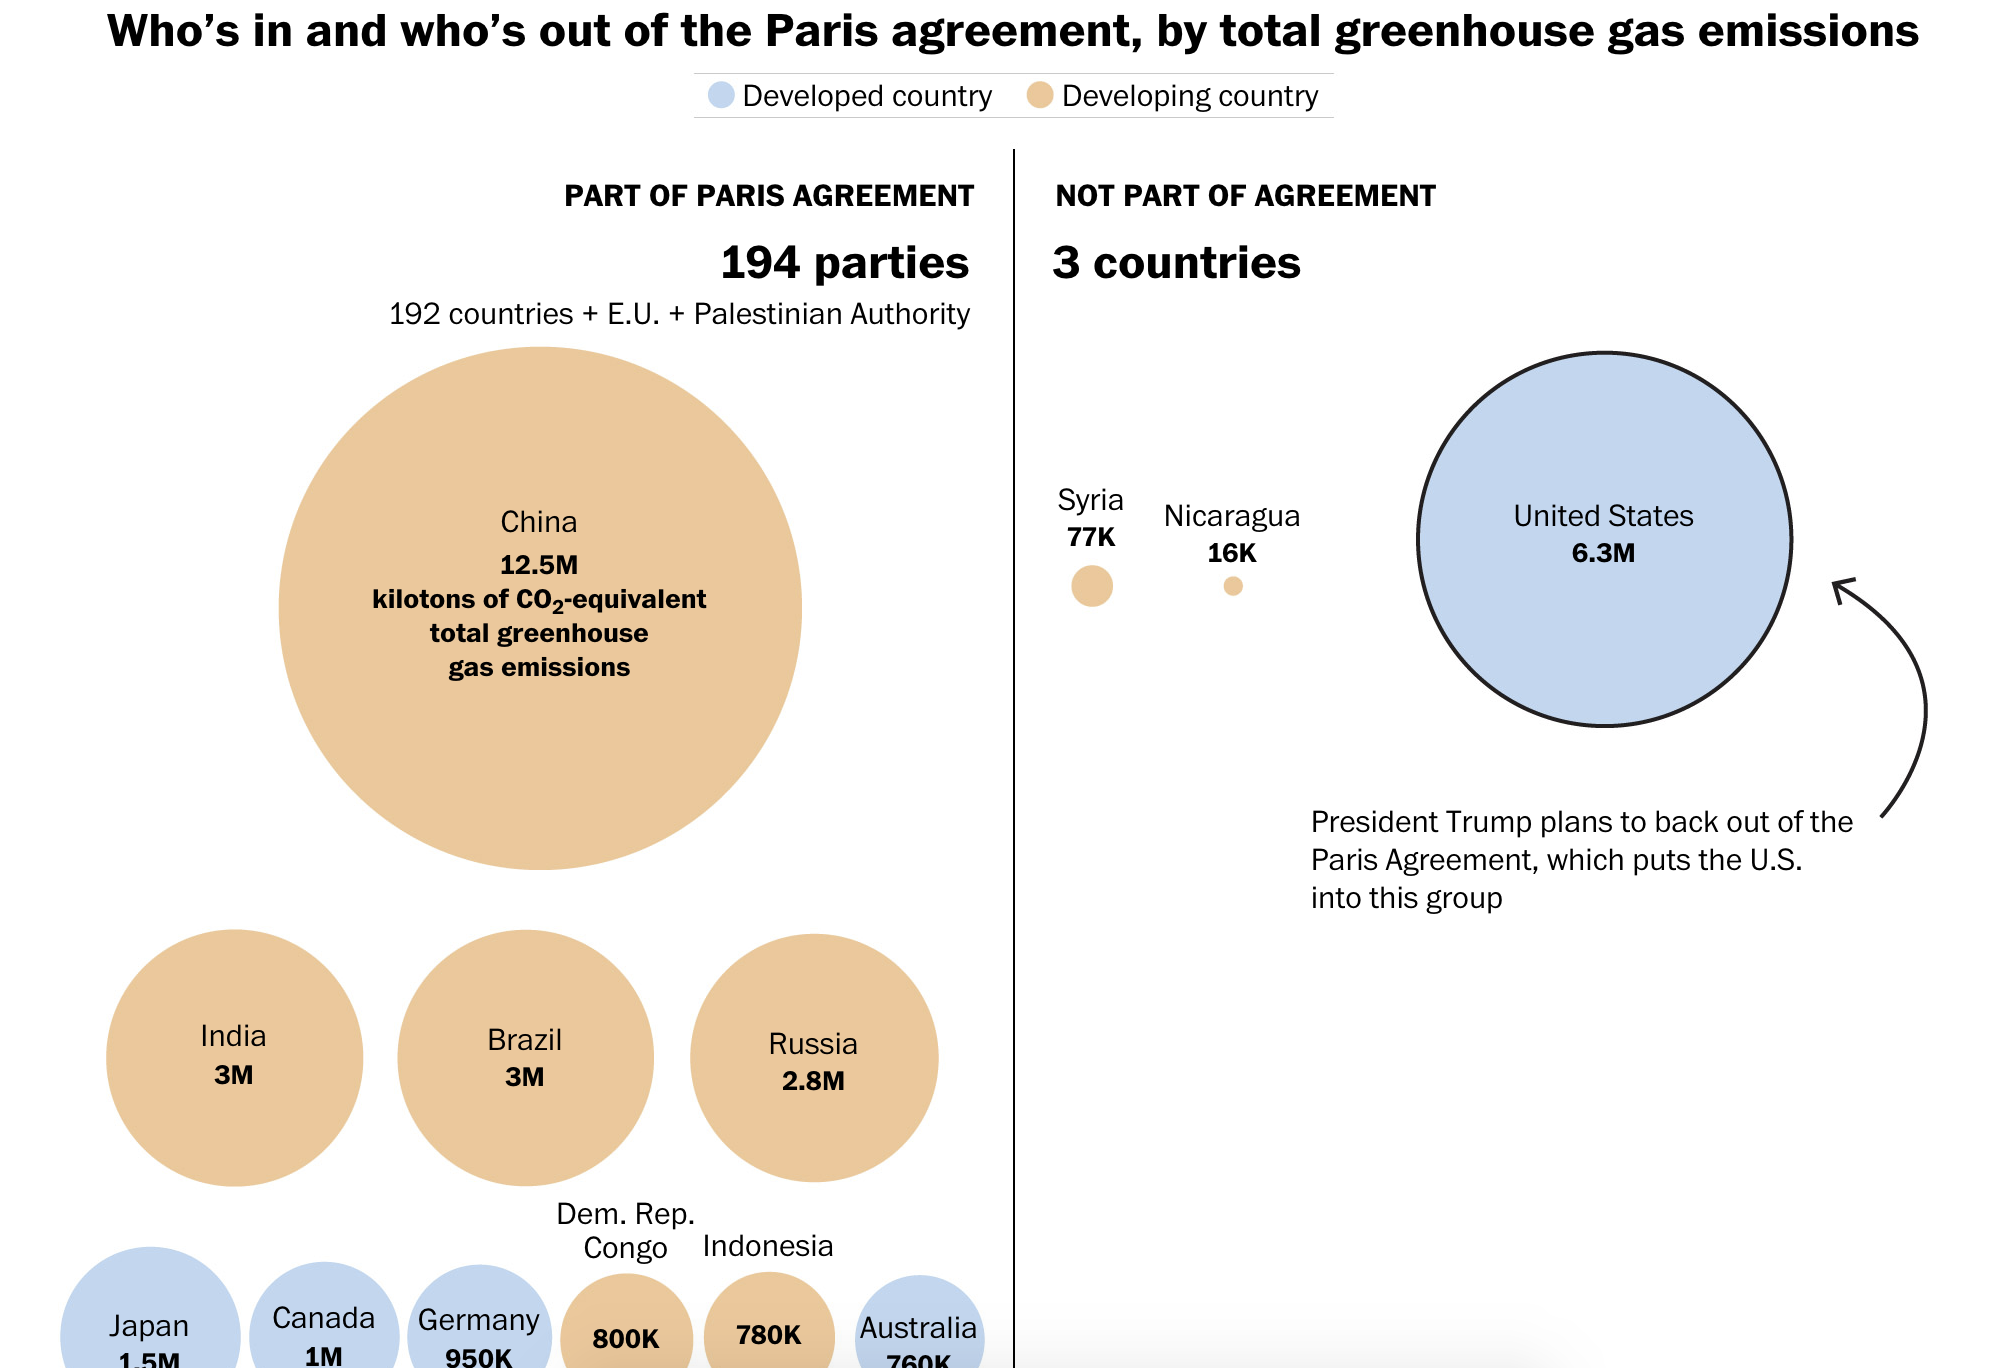 Who's in and who's out of the Paris agreement